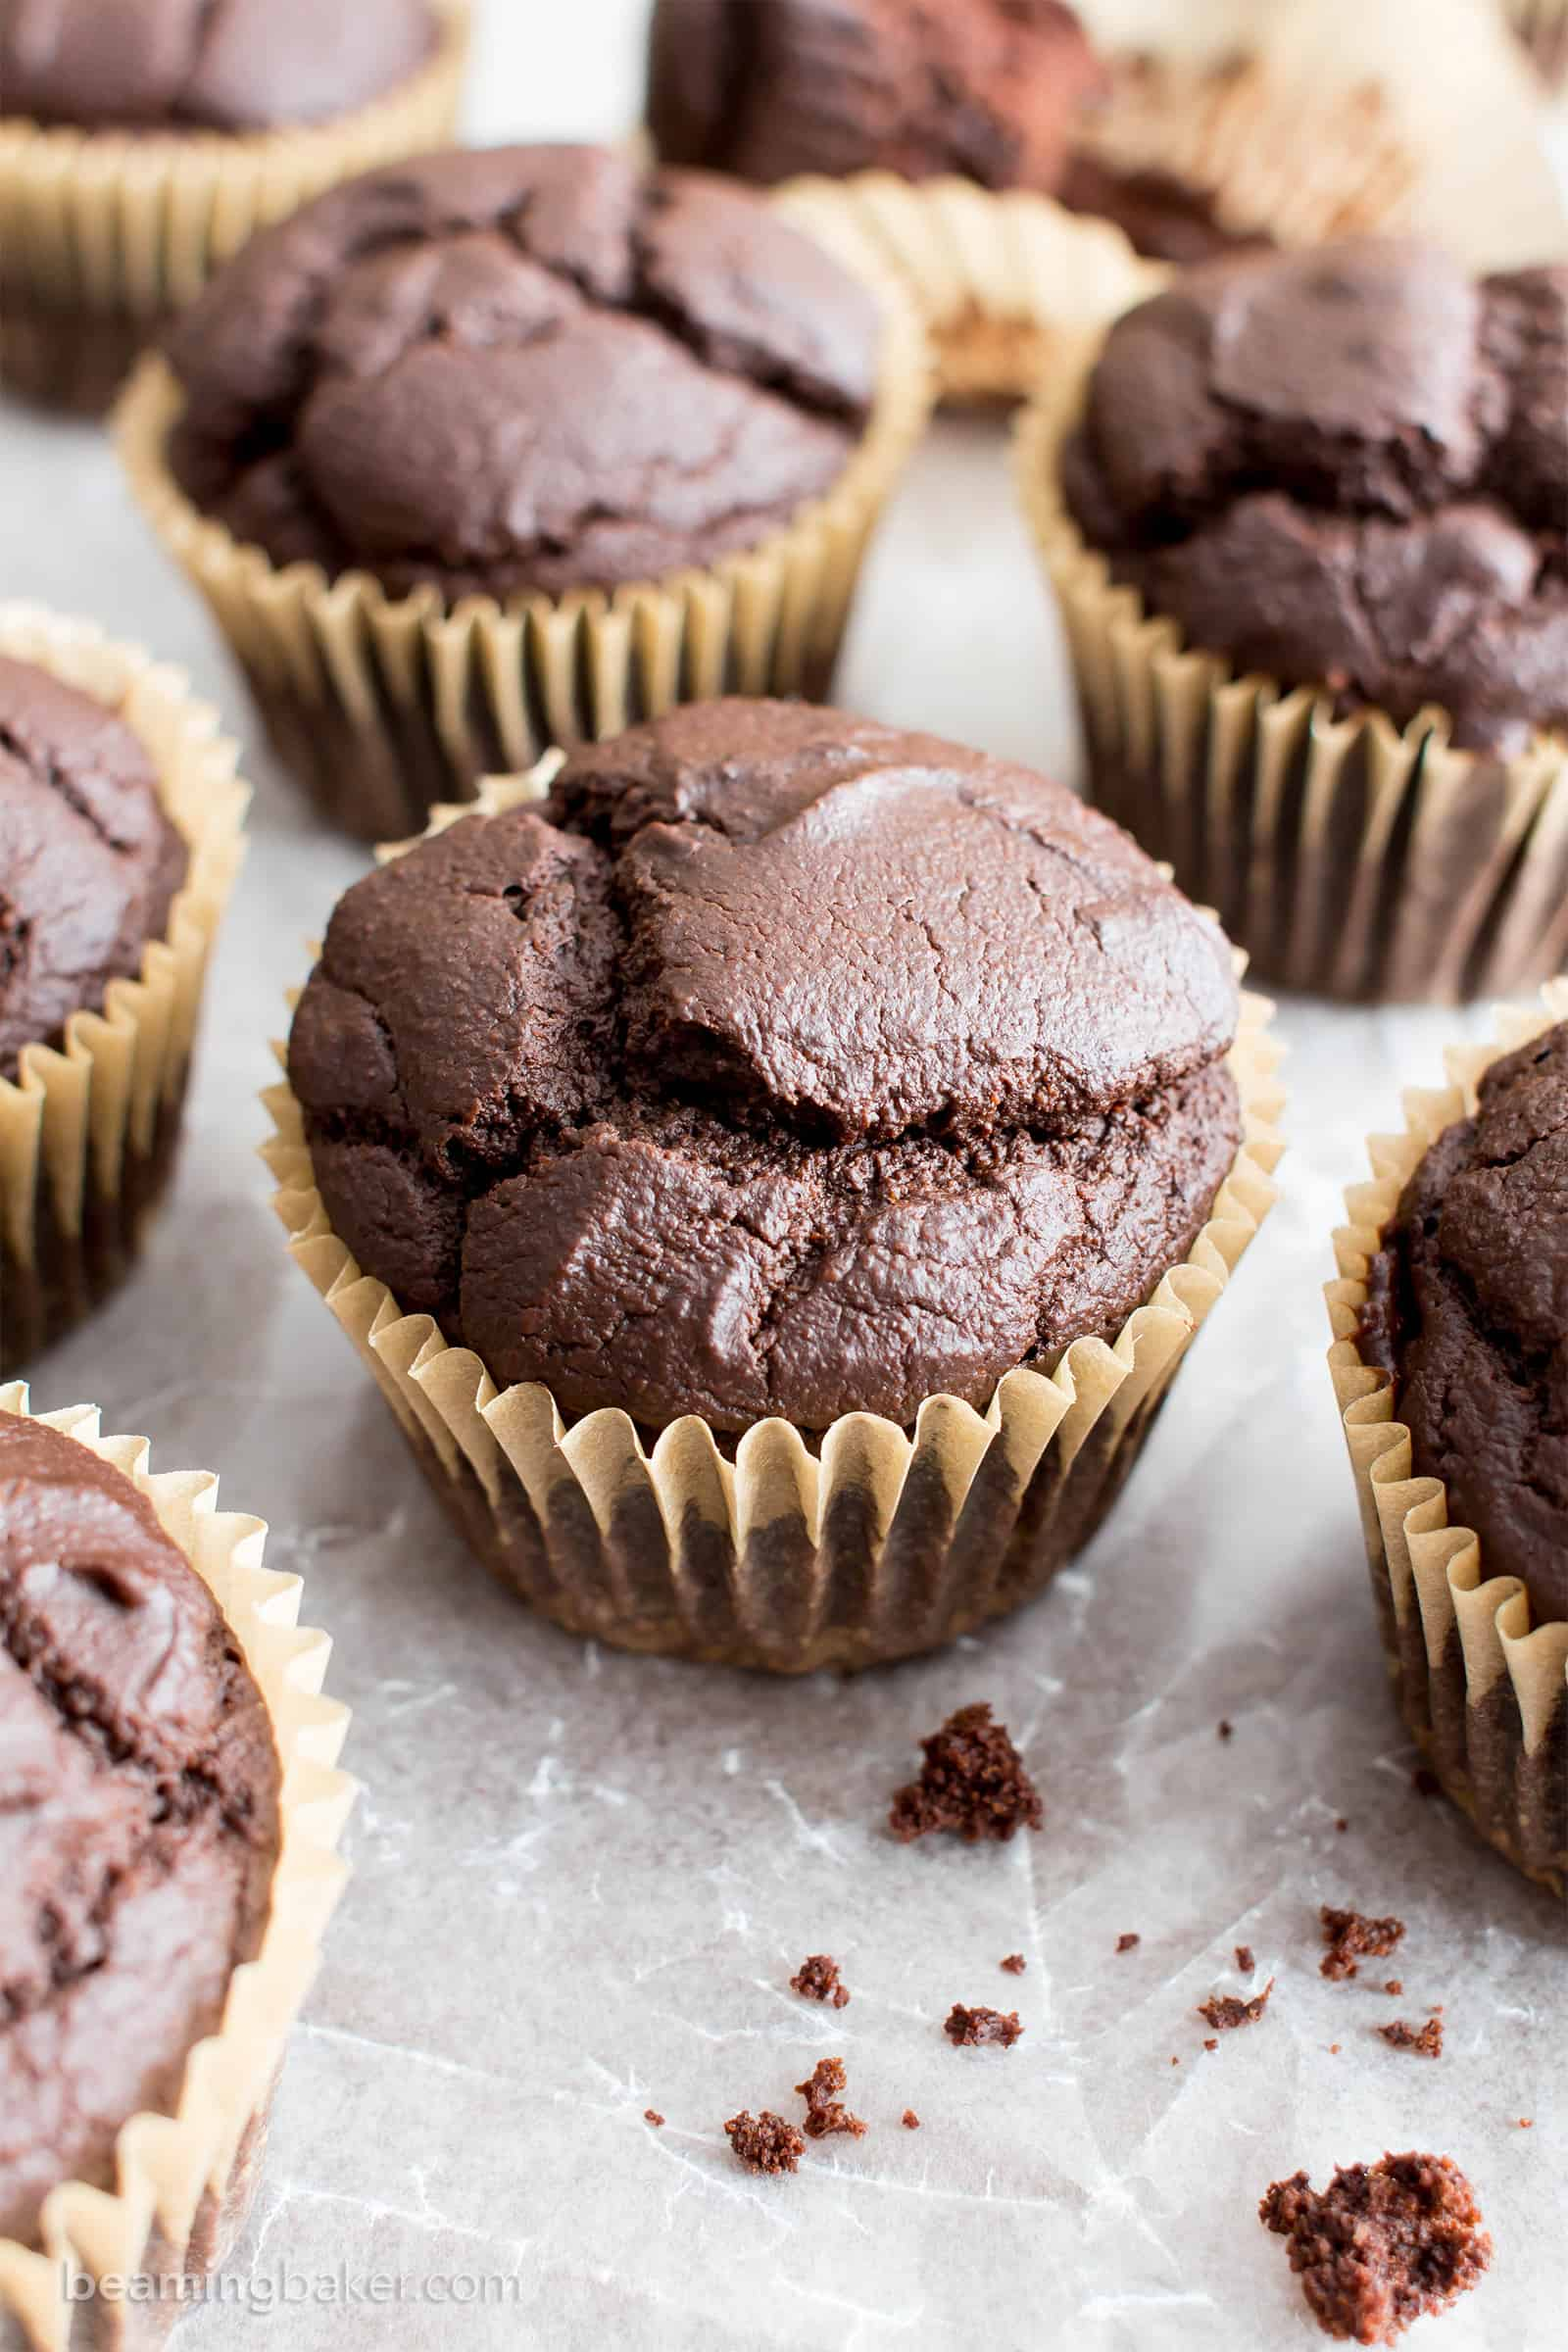 Gluten Free Chocolate Muffins: rich, deep dark vegan chocolate muffins with a beautiful rise. Dairy-Free. #GlutenFree #Vegan #Chocolate #Muffins | Recipe at BeamingBaker.com